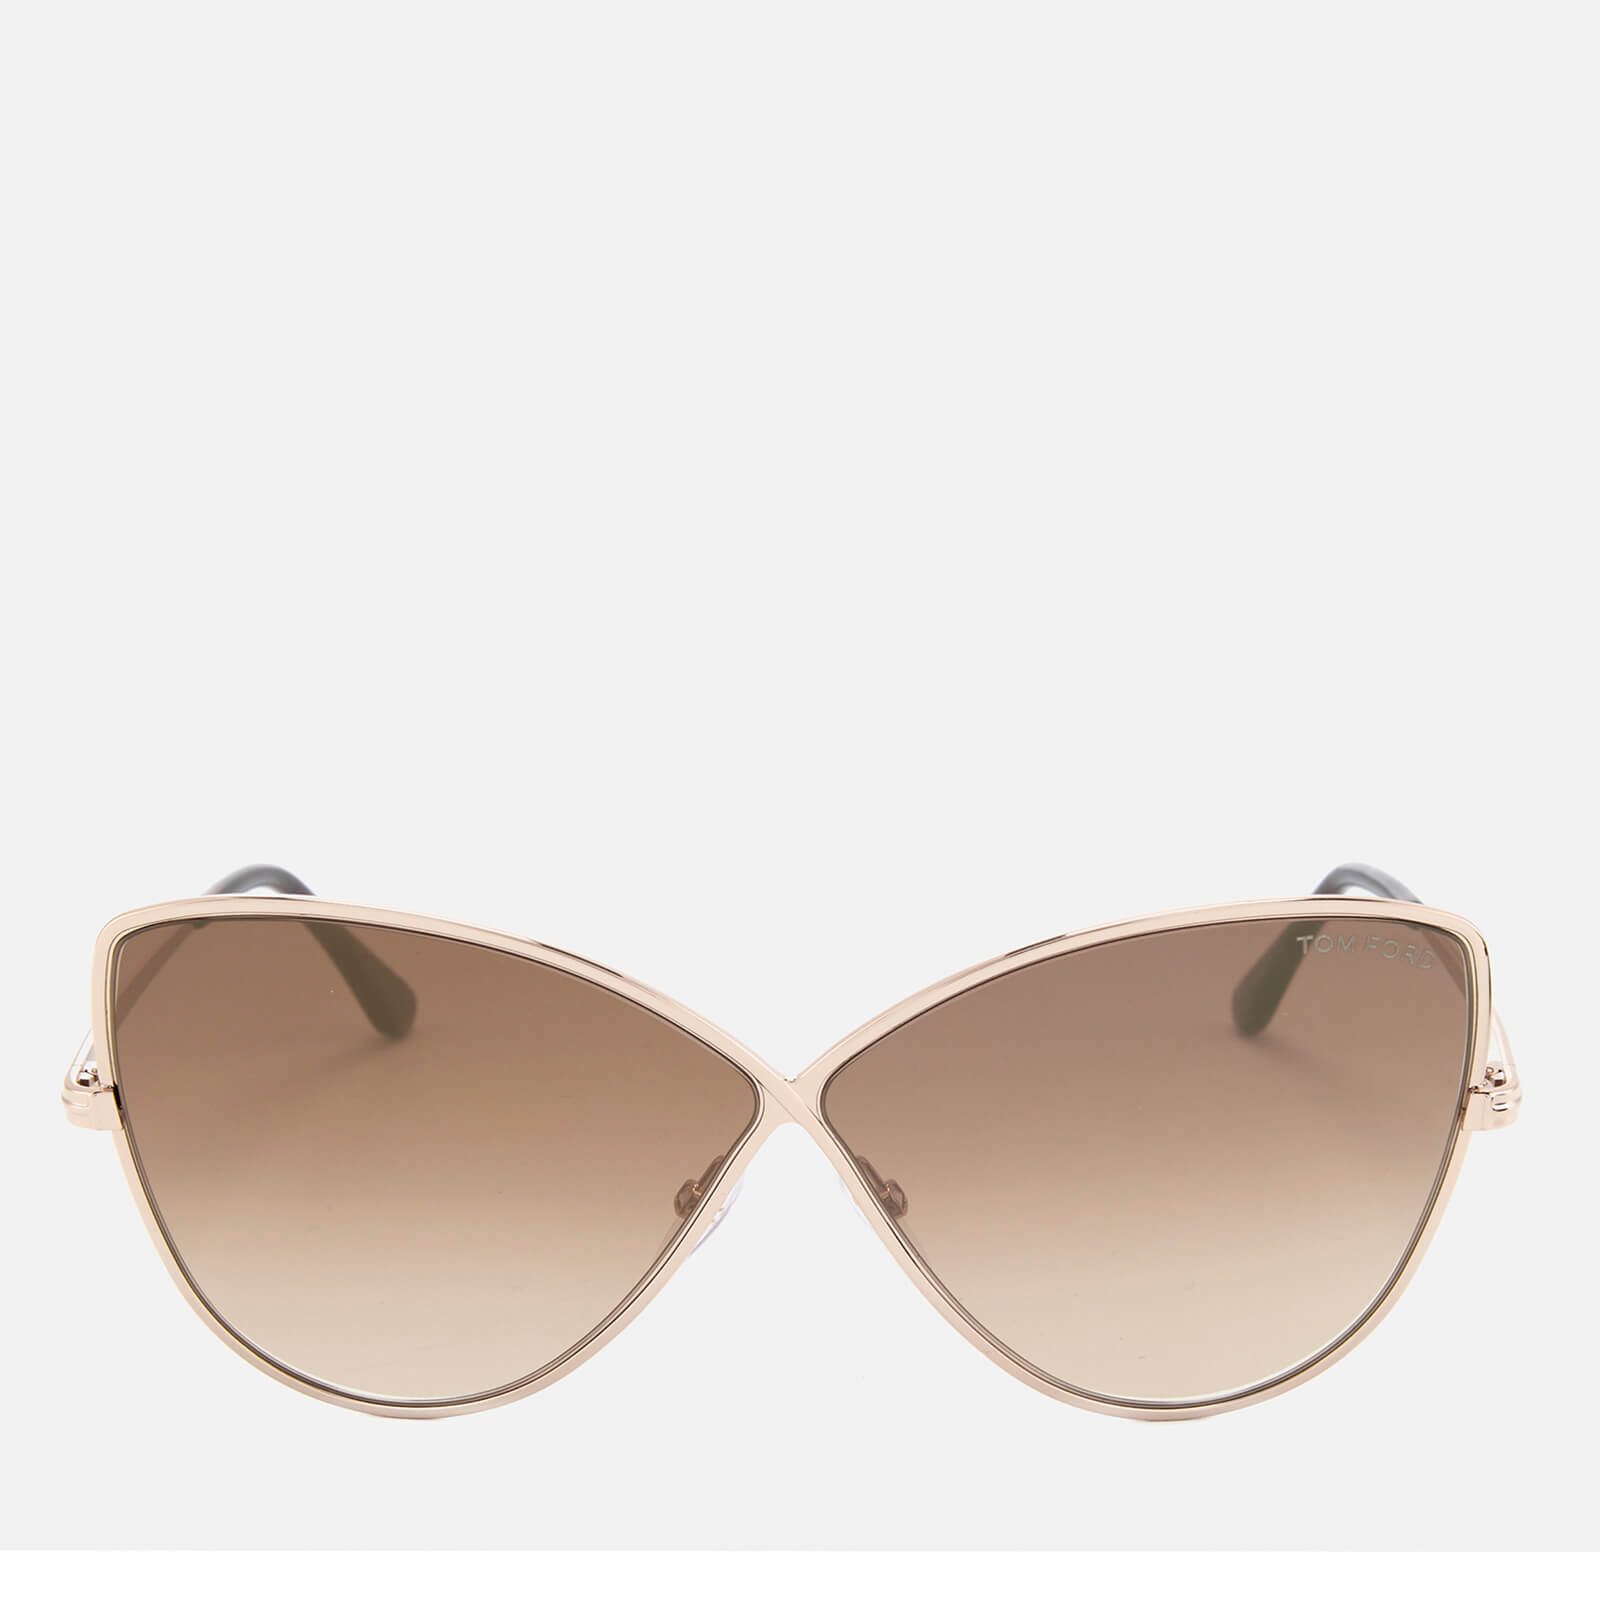 9cca26635369 Tom Ford Women's Elise Butterfly Shape Sunglasses - Rose Gold/Brown Mirror  - Free UK Delivery over £50